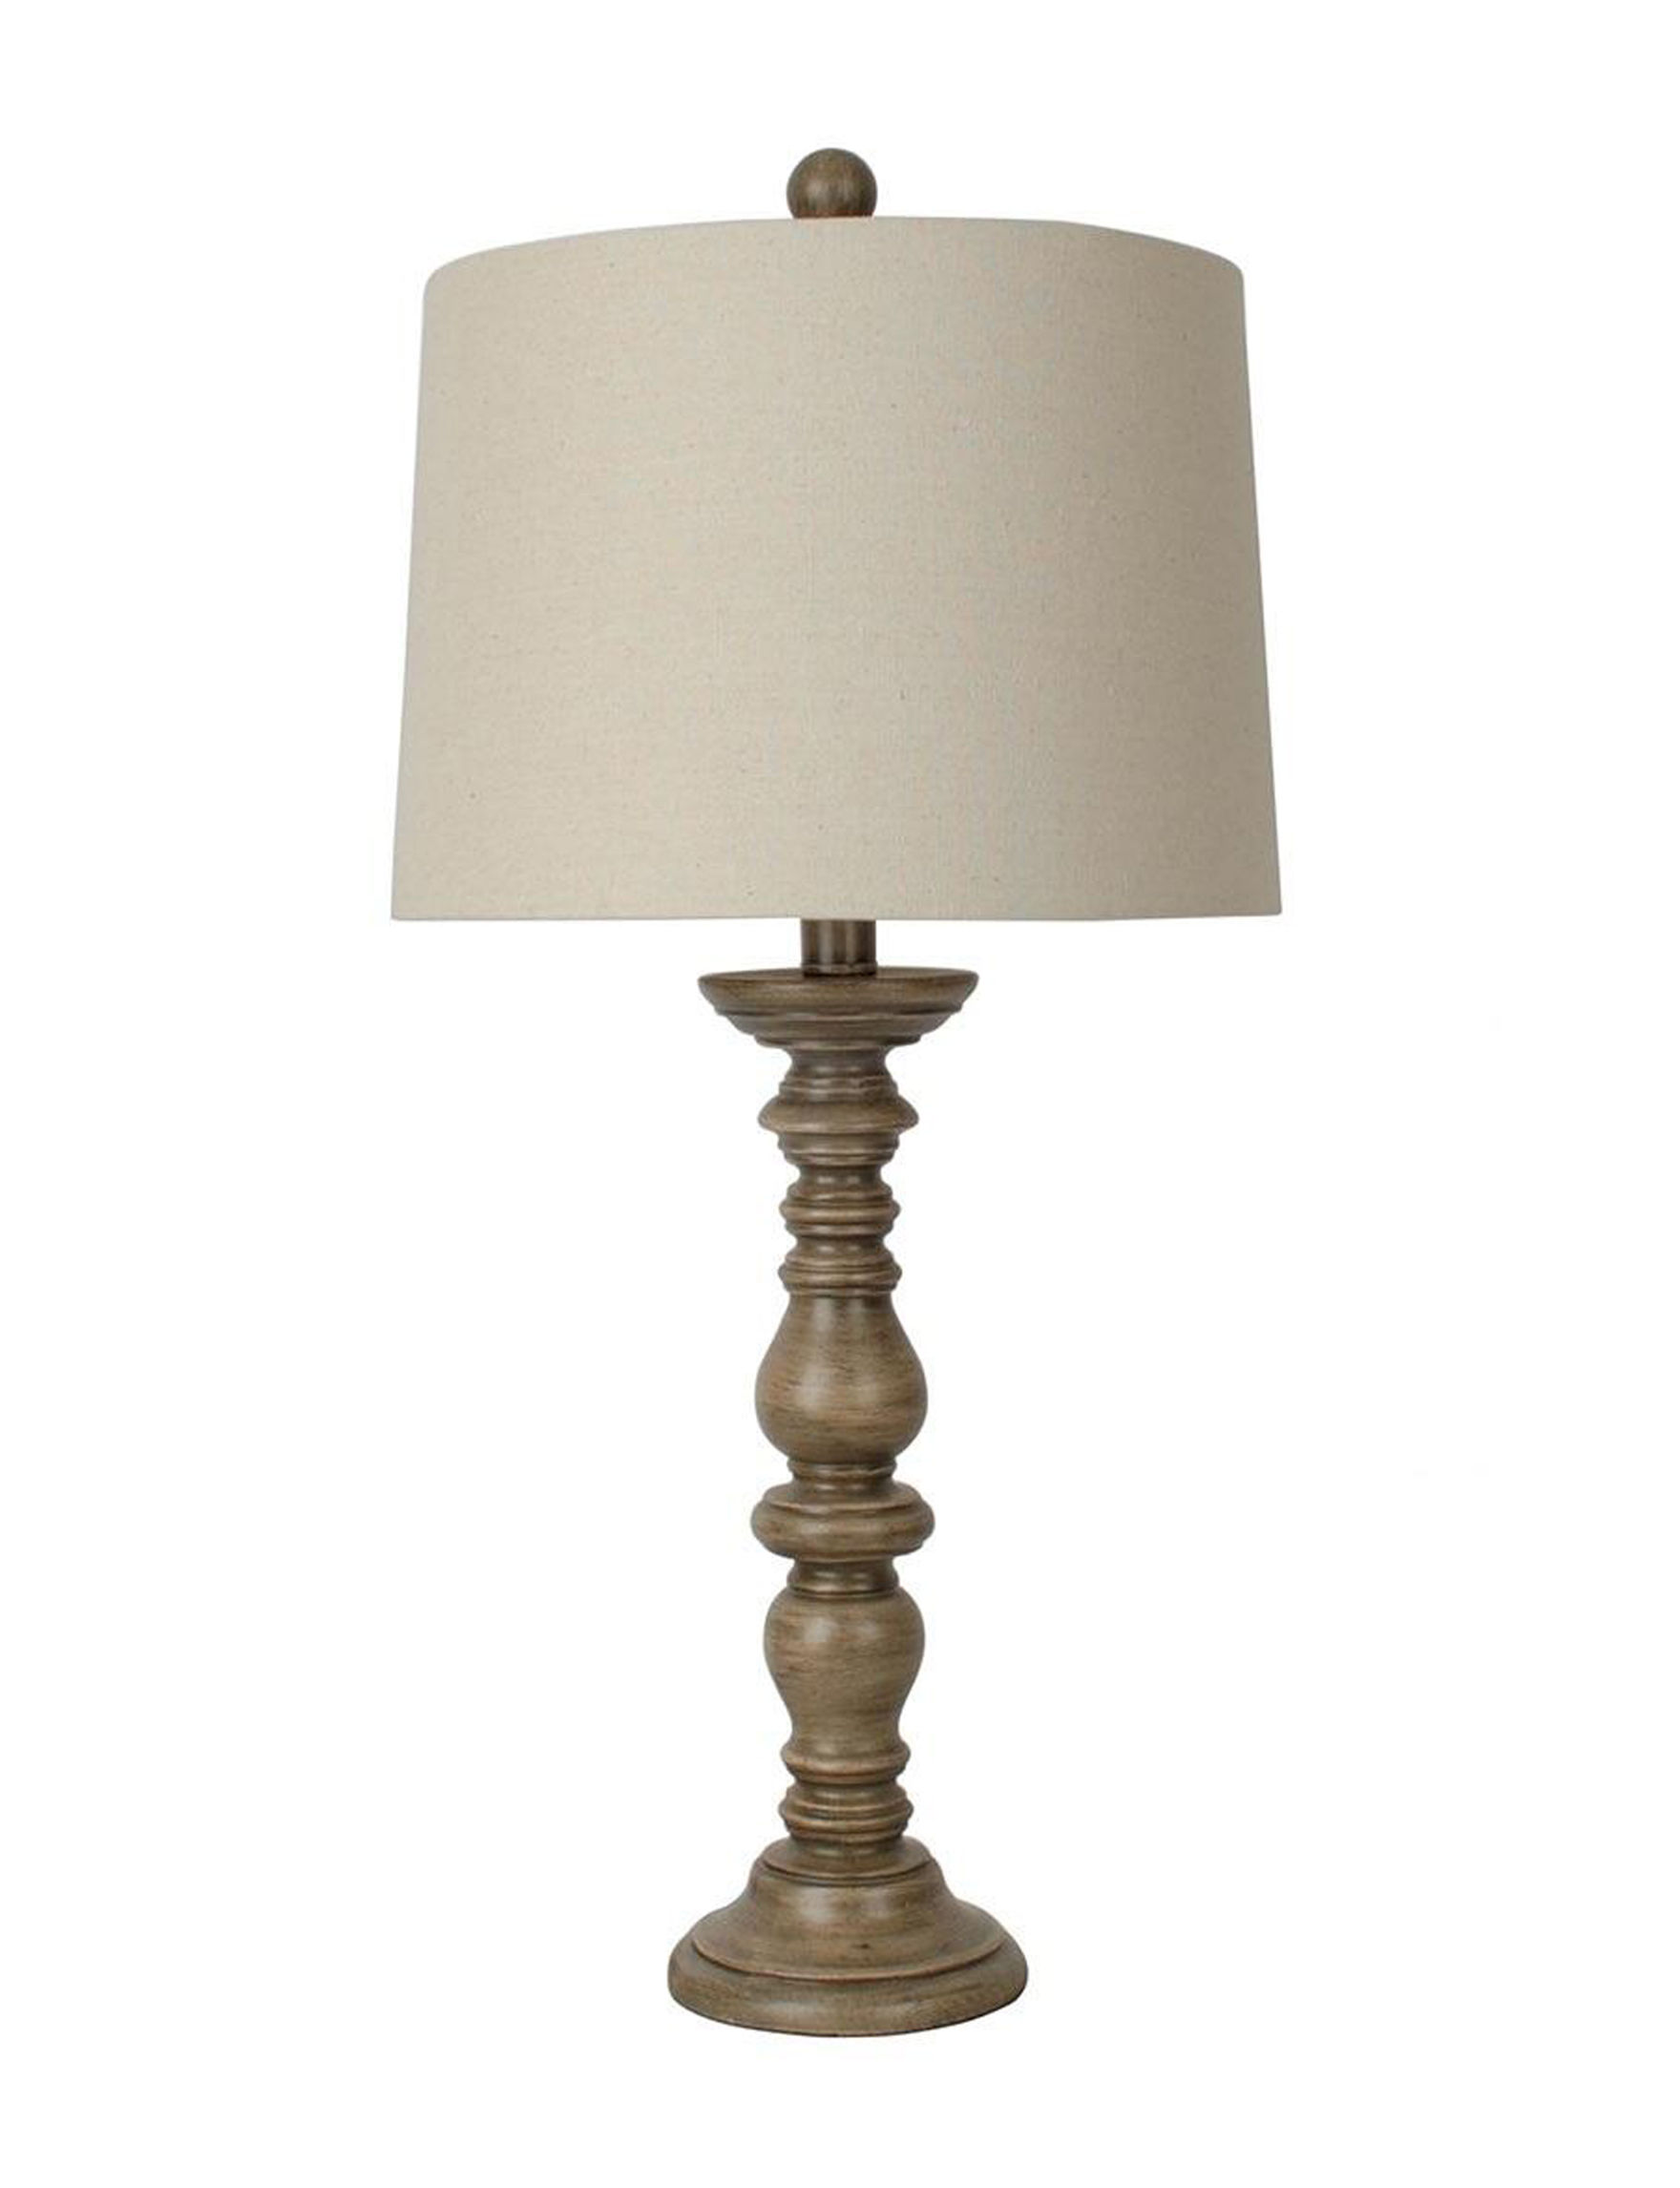 Jimco Lamp & Manufacturing Beige Table Lamps Lighting & Lamps